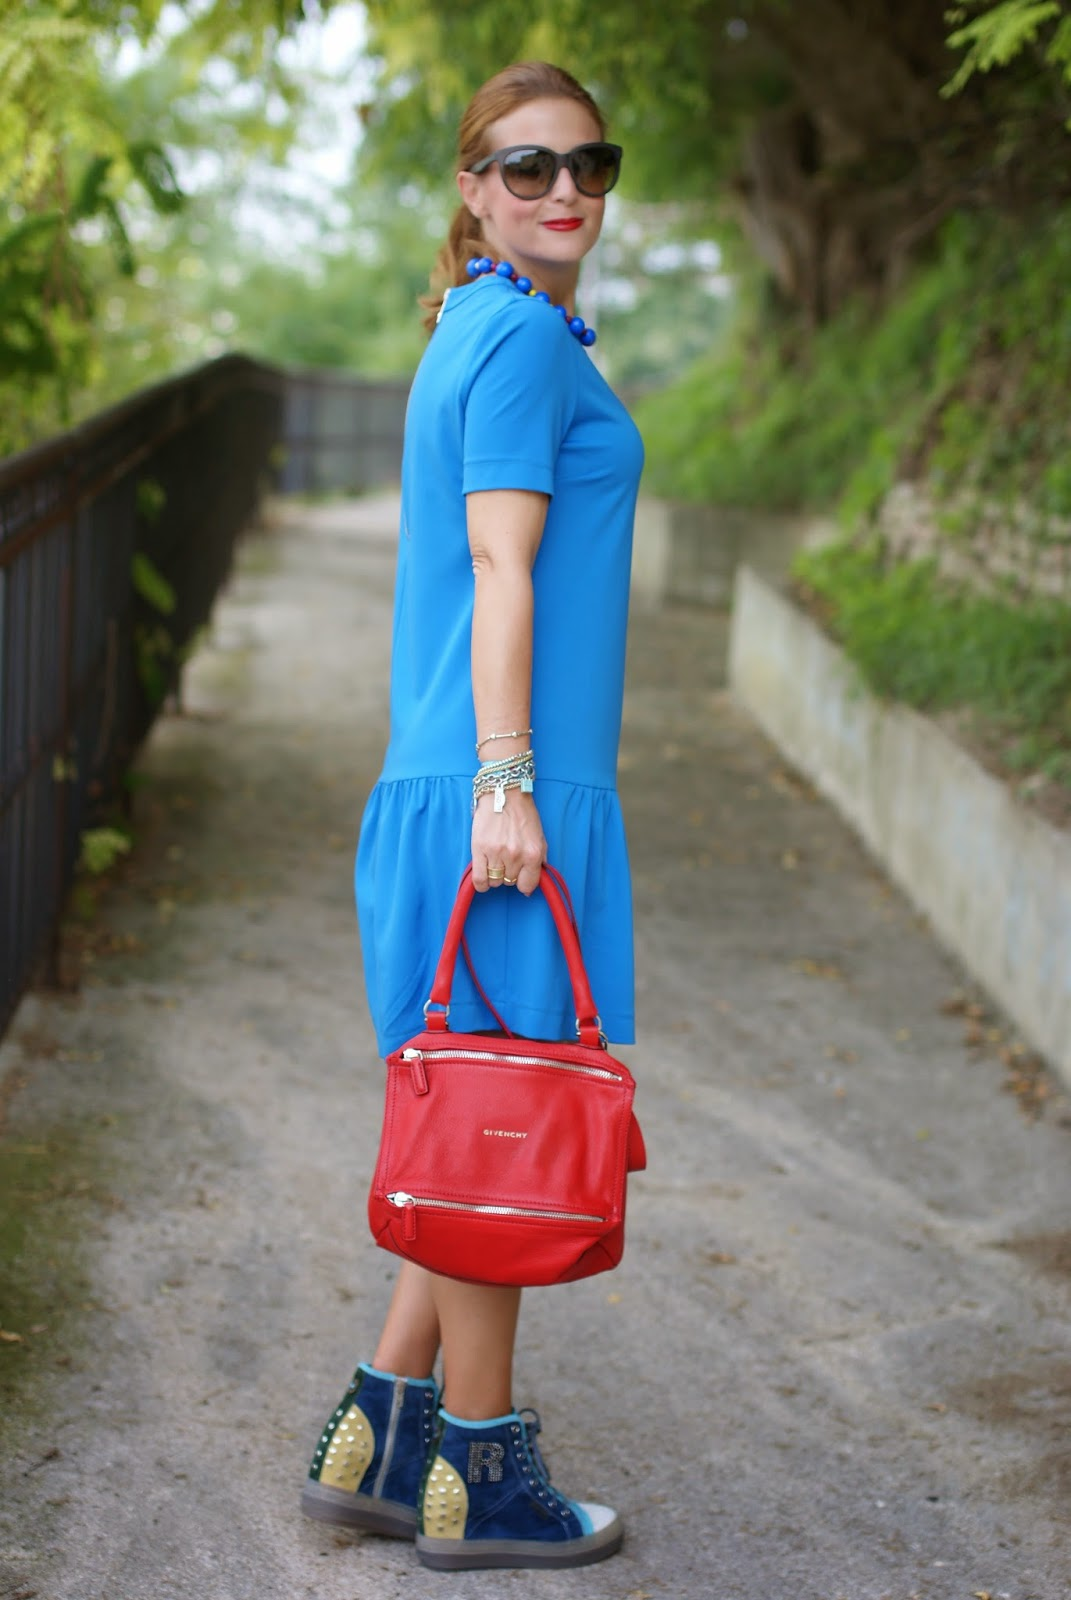 Ruco Line sneakers, Givenchy Pandora red bag, Ruco Line new collection Fall Winter 2015 2015, Tessitura Lancioni scarf, Fashion and Cookies, fashion blogger